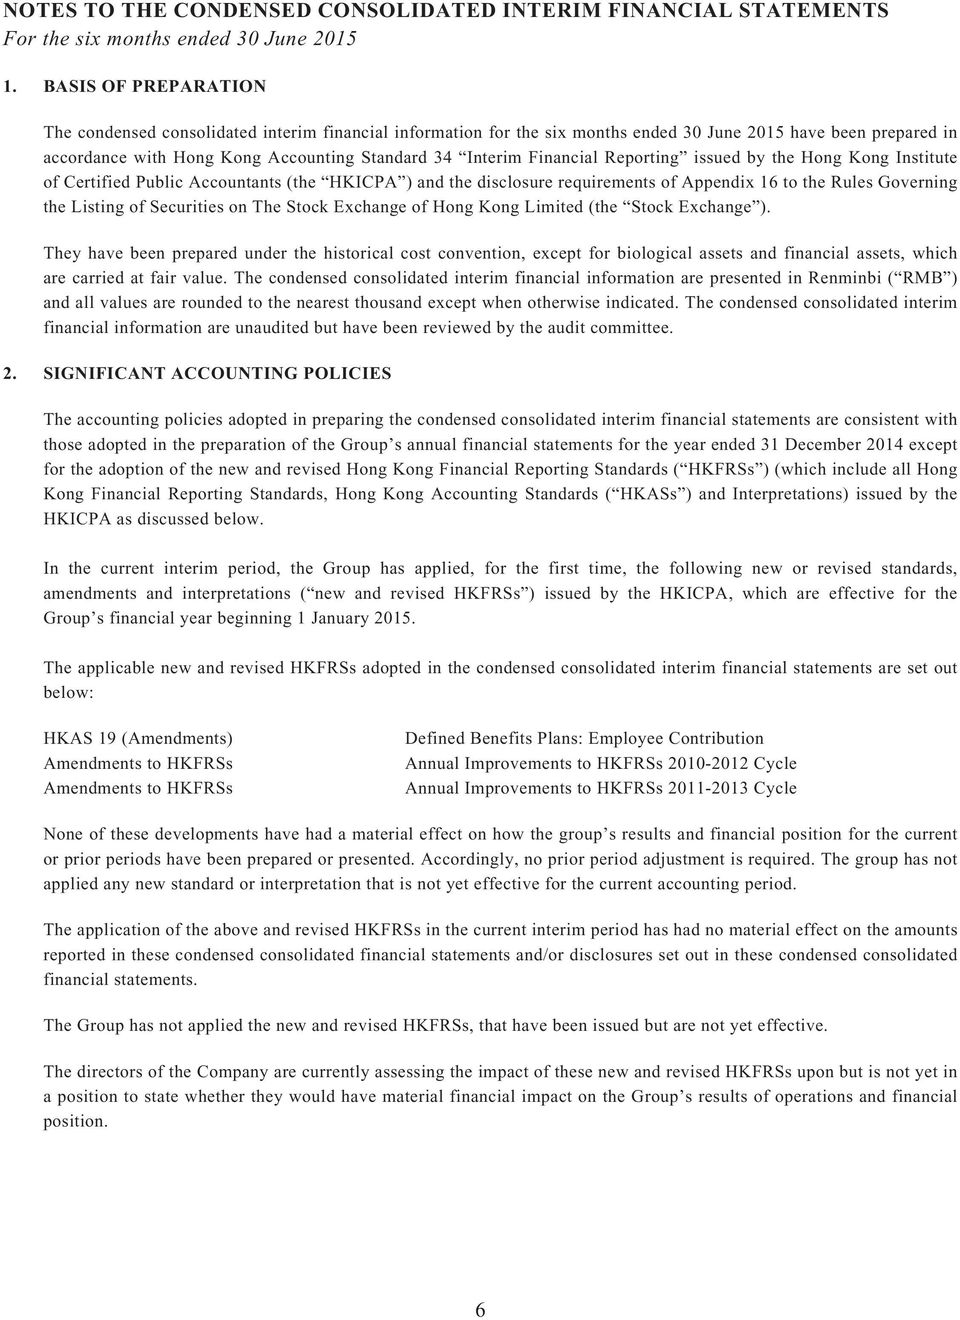 Financial Reporting issued by the Hong Kong Institute of Certified Public Accountants (the HKICPA ) and the disclosure requirements of Appendix 16 to the Rules Governing the Listing of Securities on